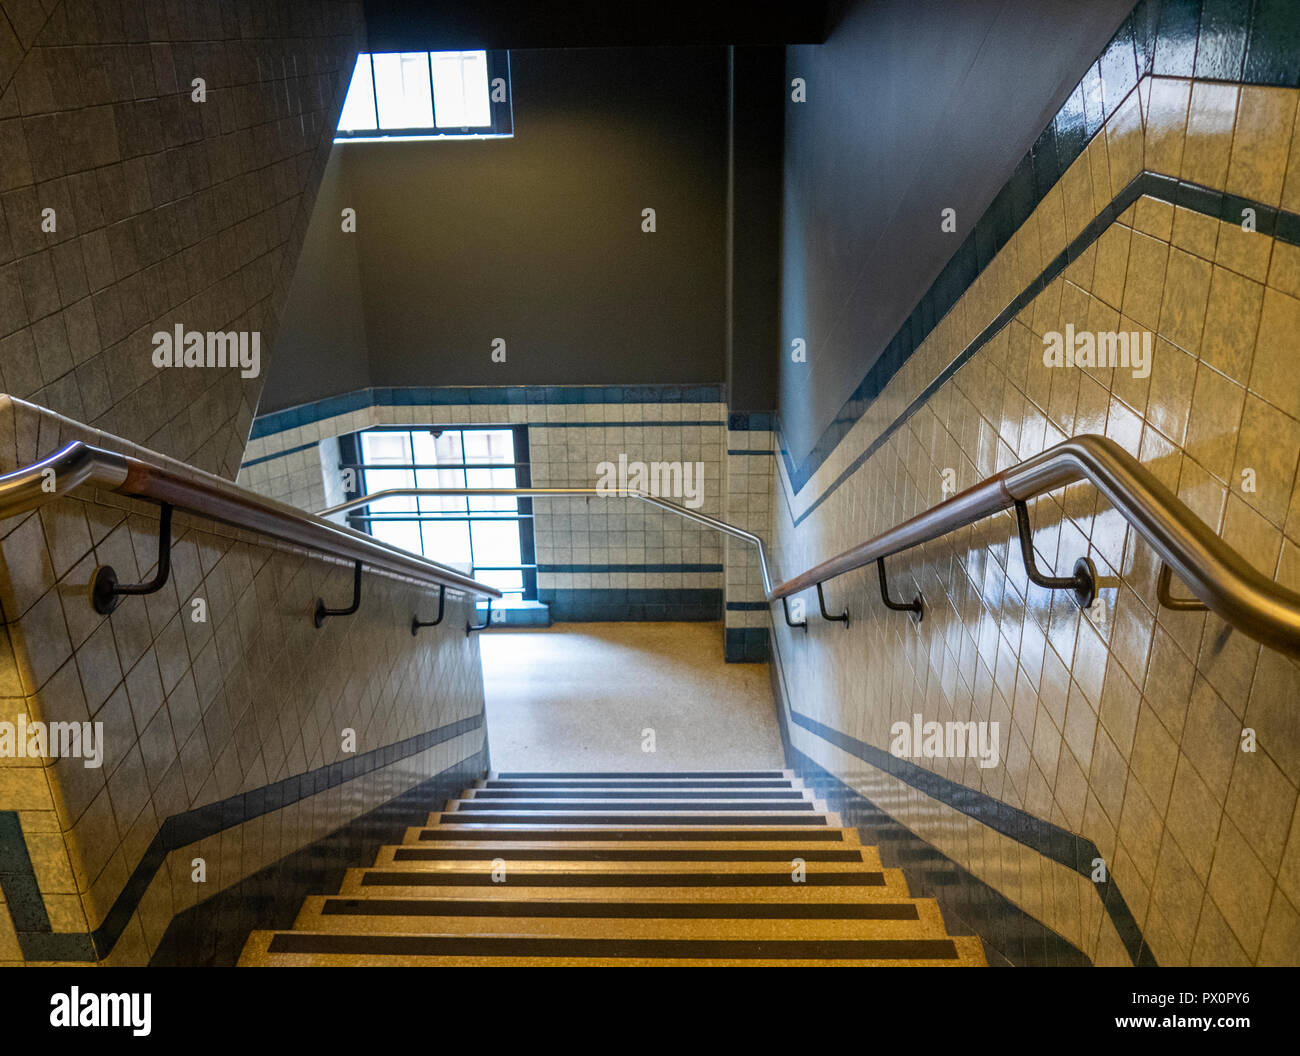 Art deco style staircase in the Gowings Building converted into the QT Hotel, Market Street Sydney NSW Australia. - Stock Image